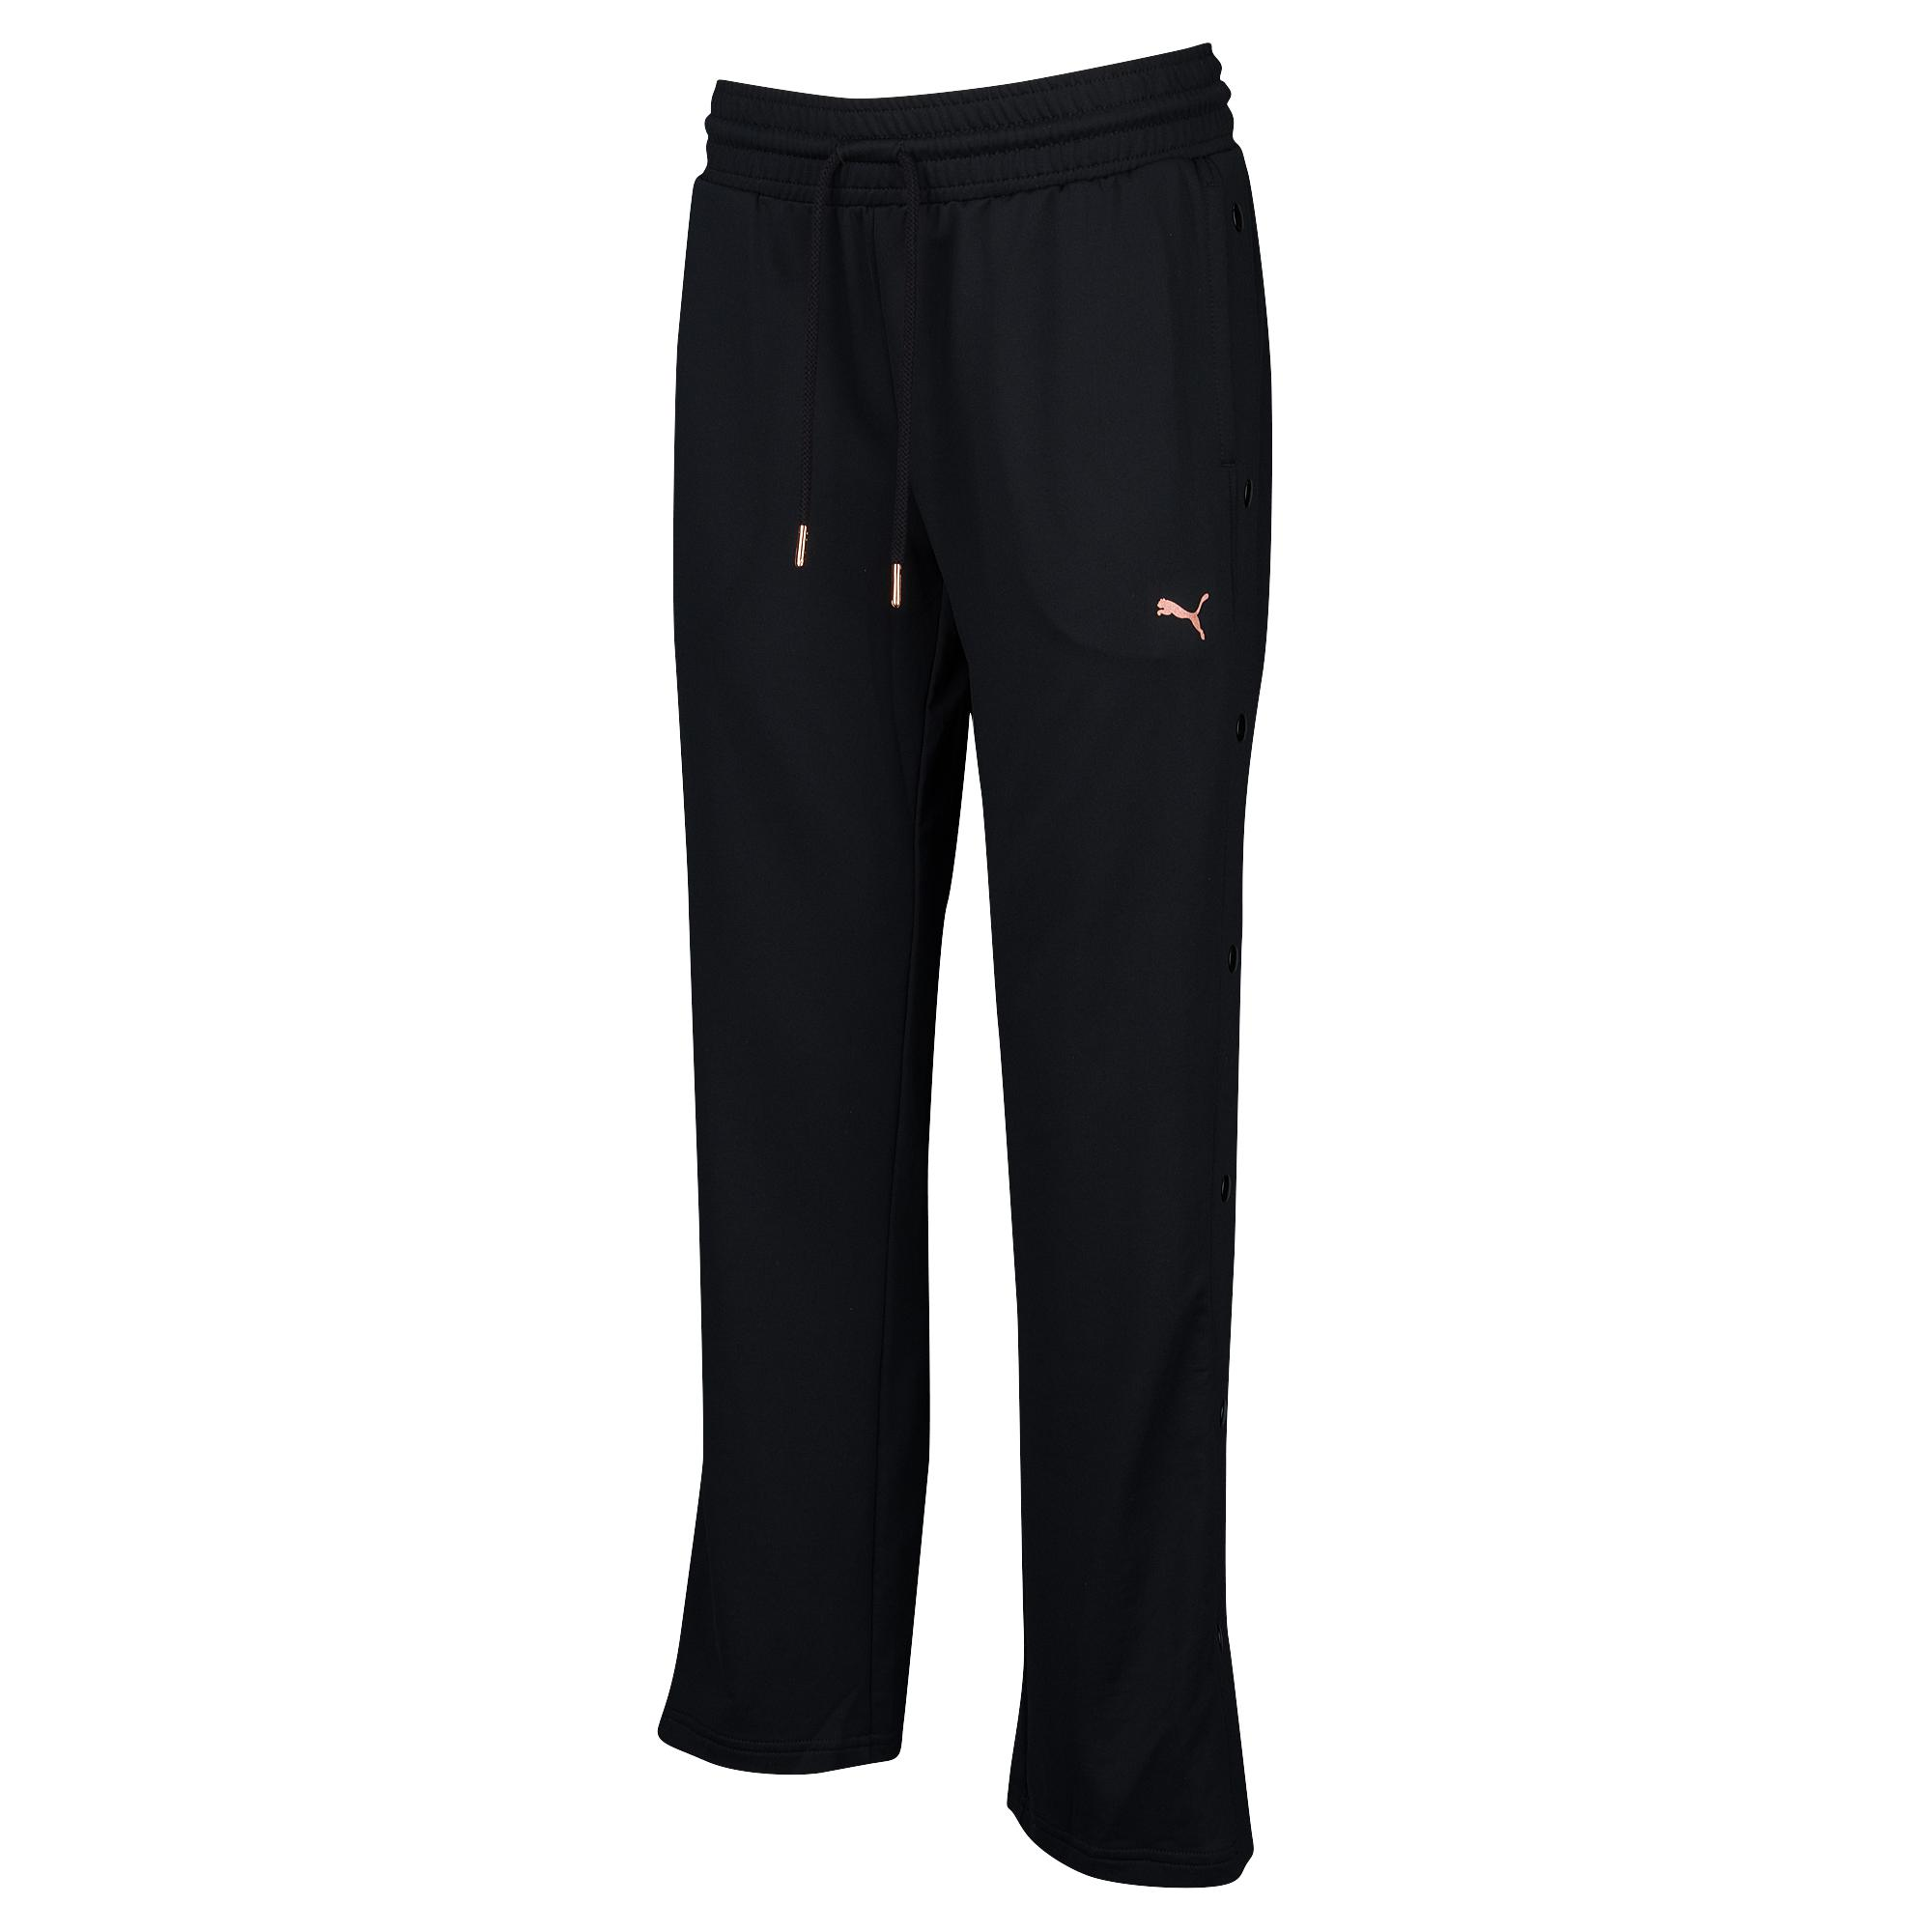 5c41c7df2d84 Lyst - Puma Explosive Tearaway Pants in Black for Men